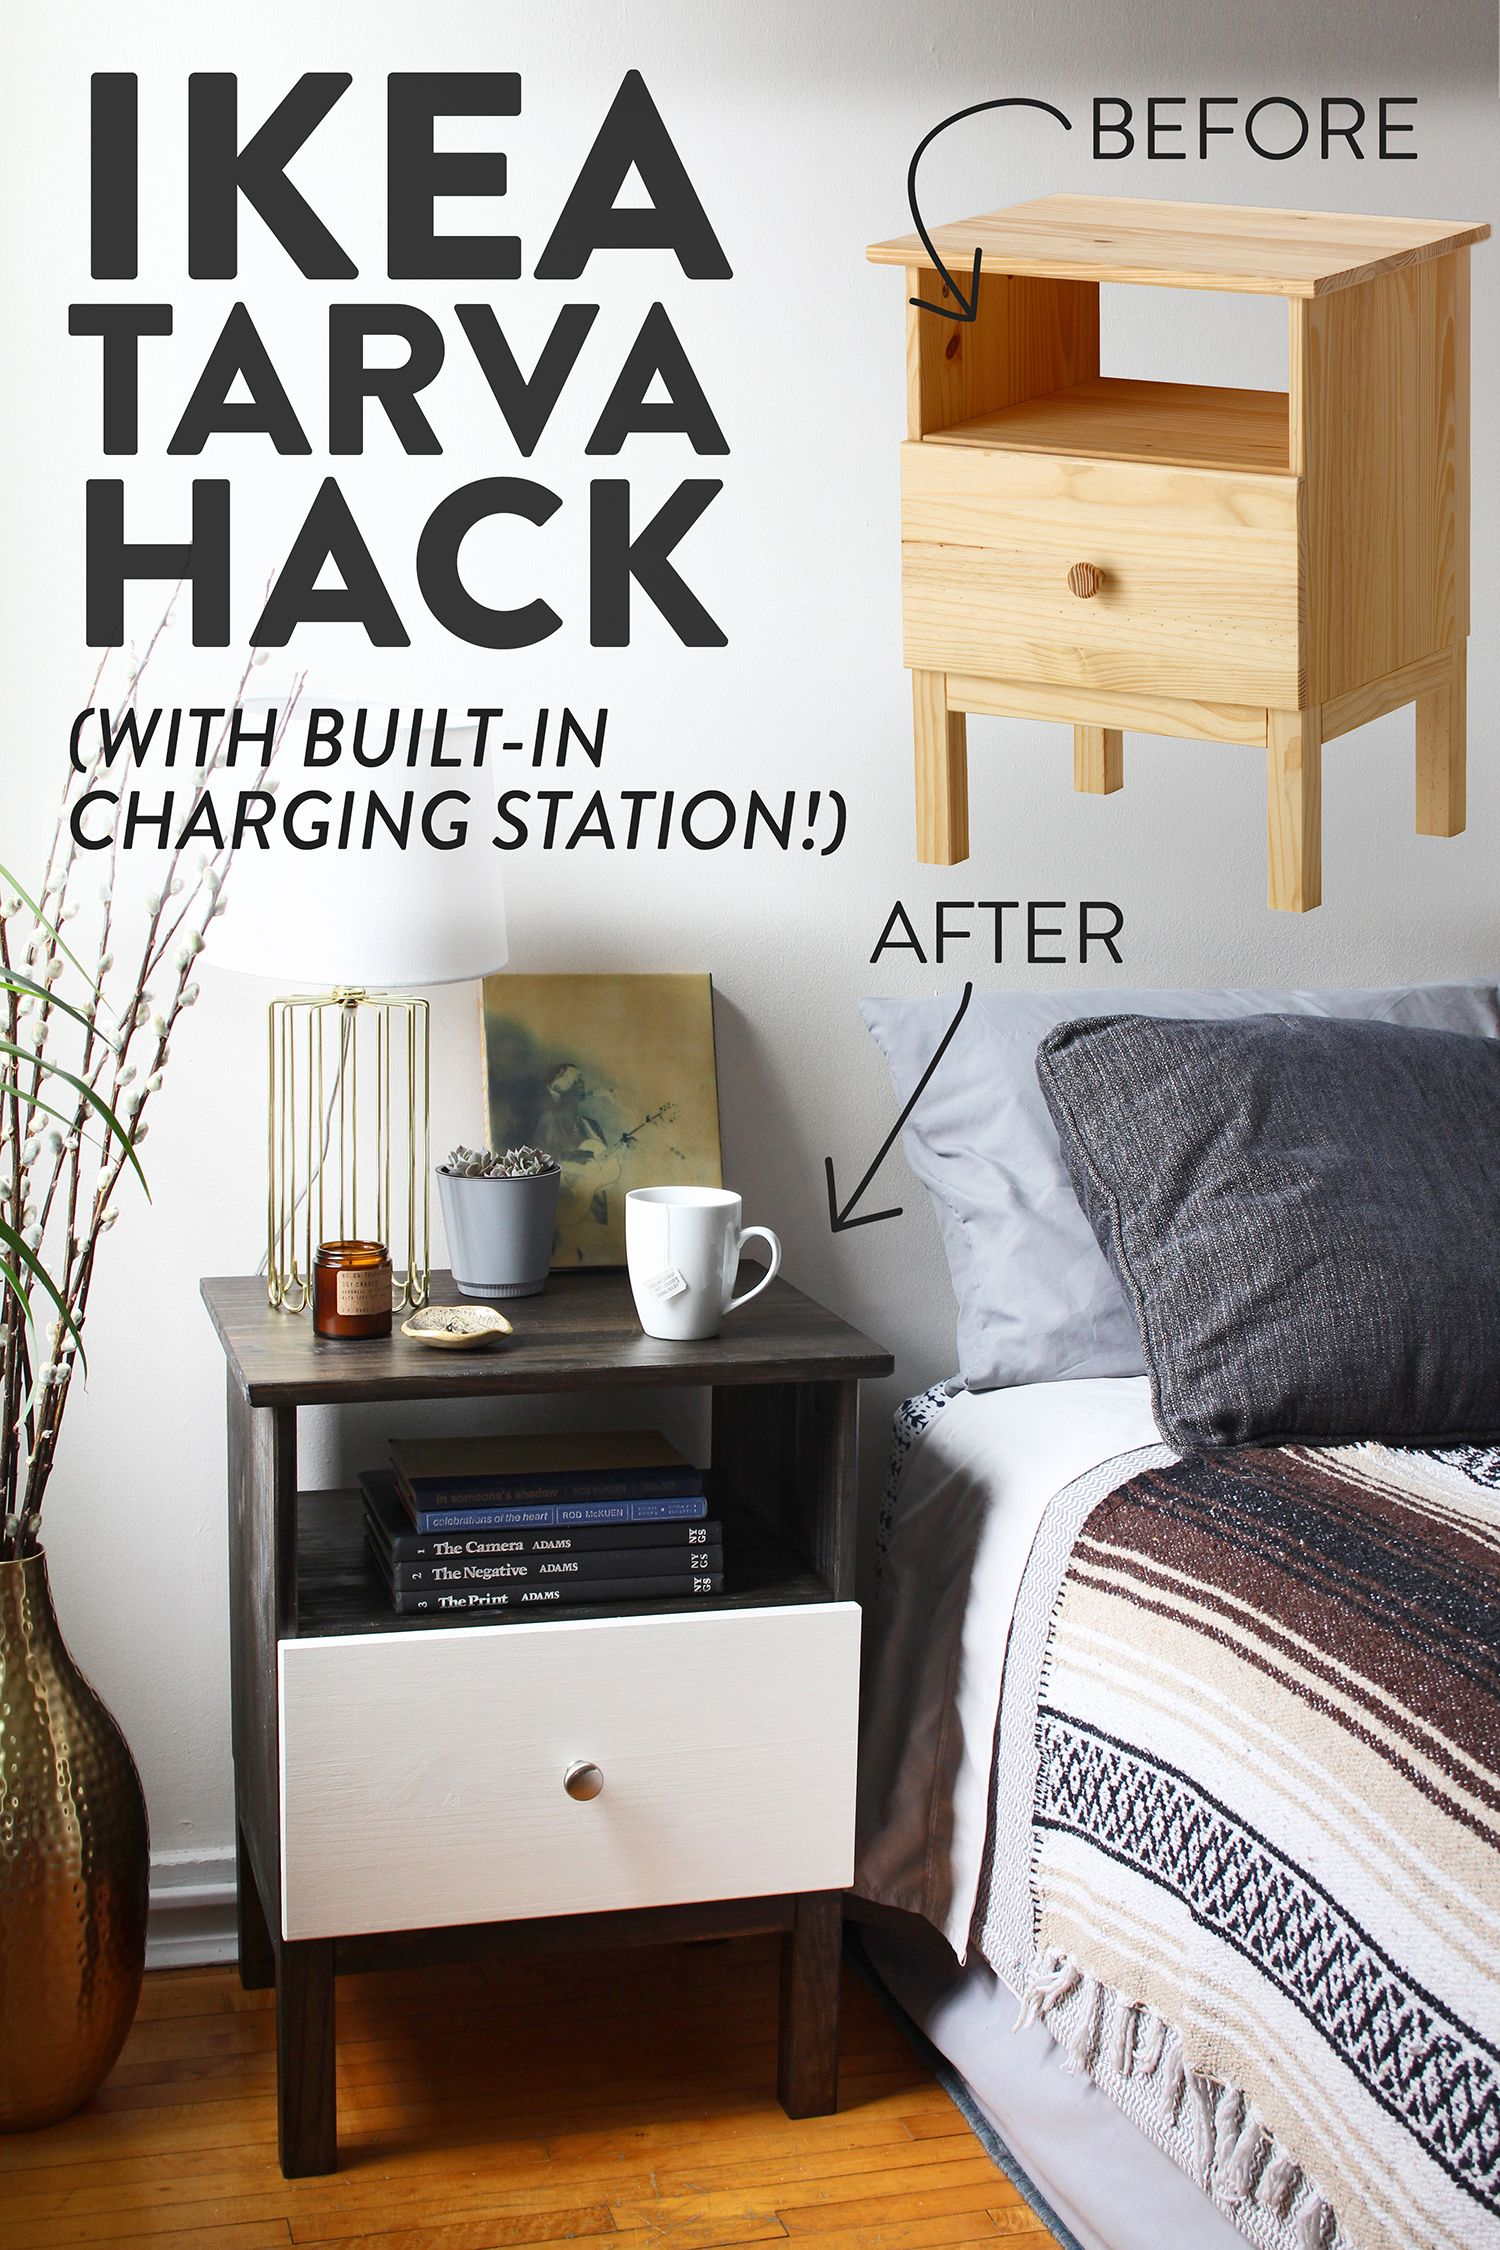 Ikea Hack With A Built In Charging Station Transform The